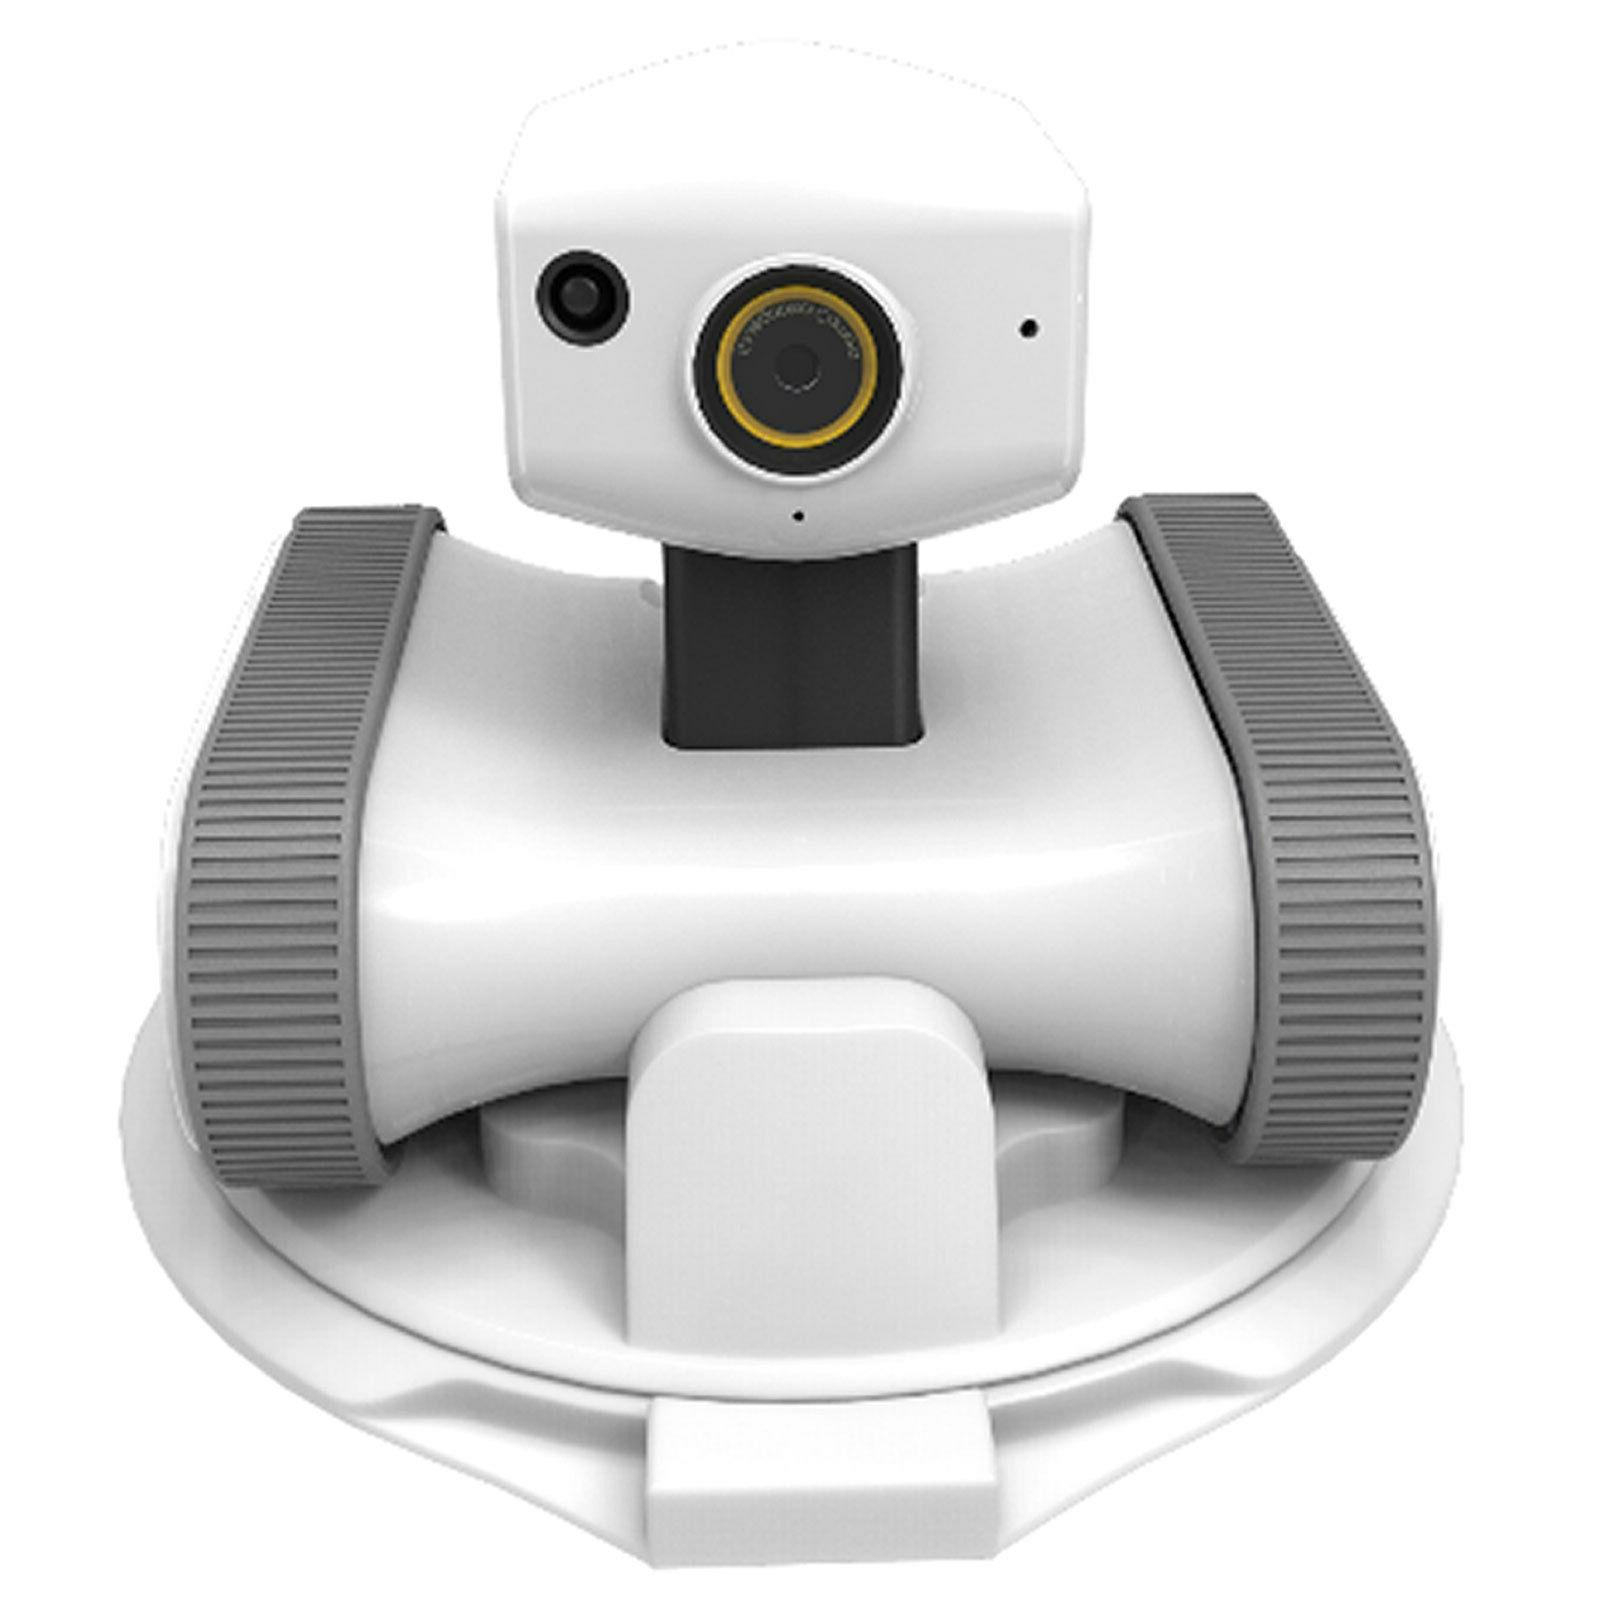 Appbot LED 720P HD 1080x720 Camera Robot for iOS /Android